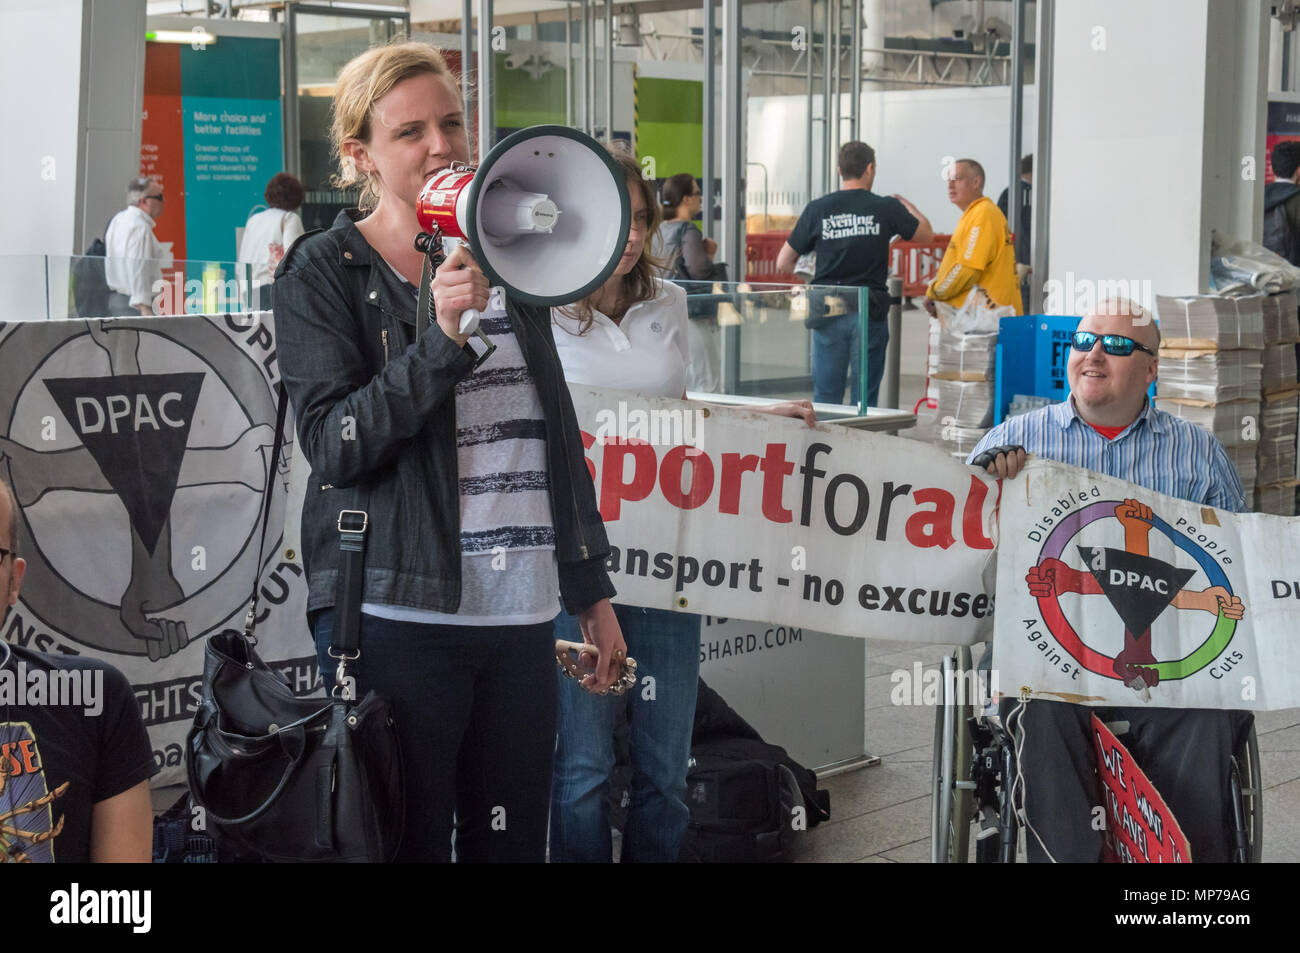 London, UK. 21st May 2018. A protester spraks at the 'People's Picket' by disabled rail passengers from Disabled People Against Cuts along with the Association of British Commuters and RMT members outside London Bridge station. GTR uses a staff training guide in which they are dehumanised as 'PRM's  and staff are instructed to leave wheelchair users on the platform, even when they have arranged and pre-booked a journey. Today's timetable changes include a reduced stopping time at stations. Credit: Peter Marshall/Alamy Live News - Stock Image